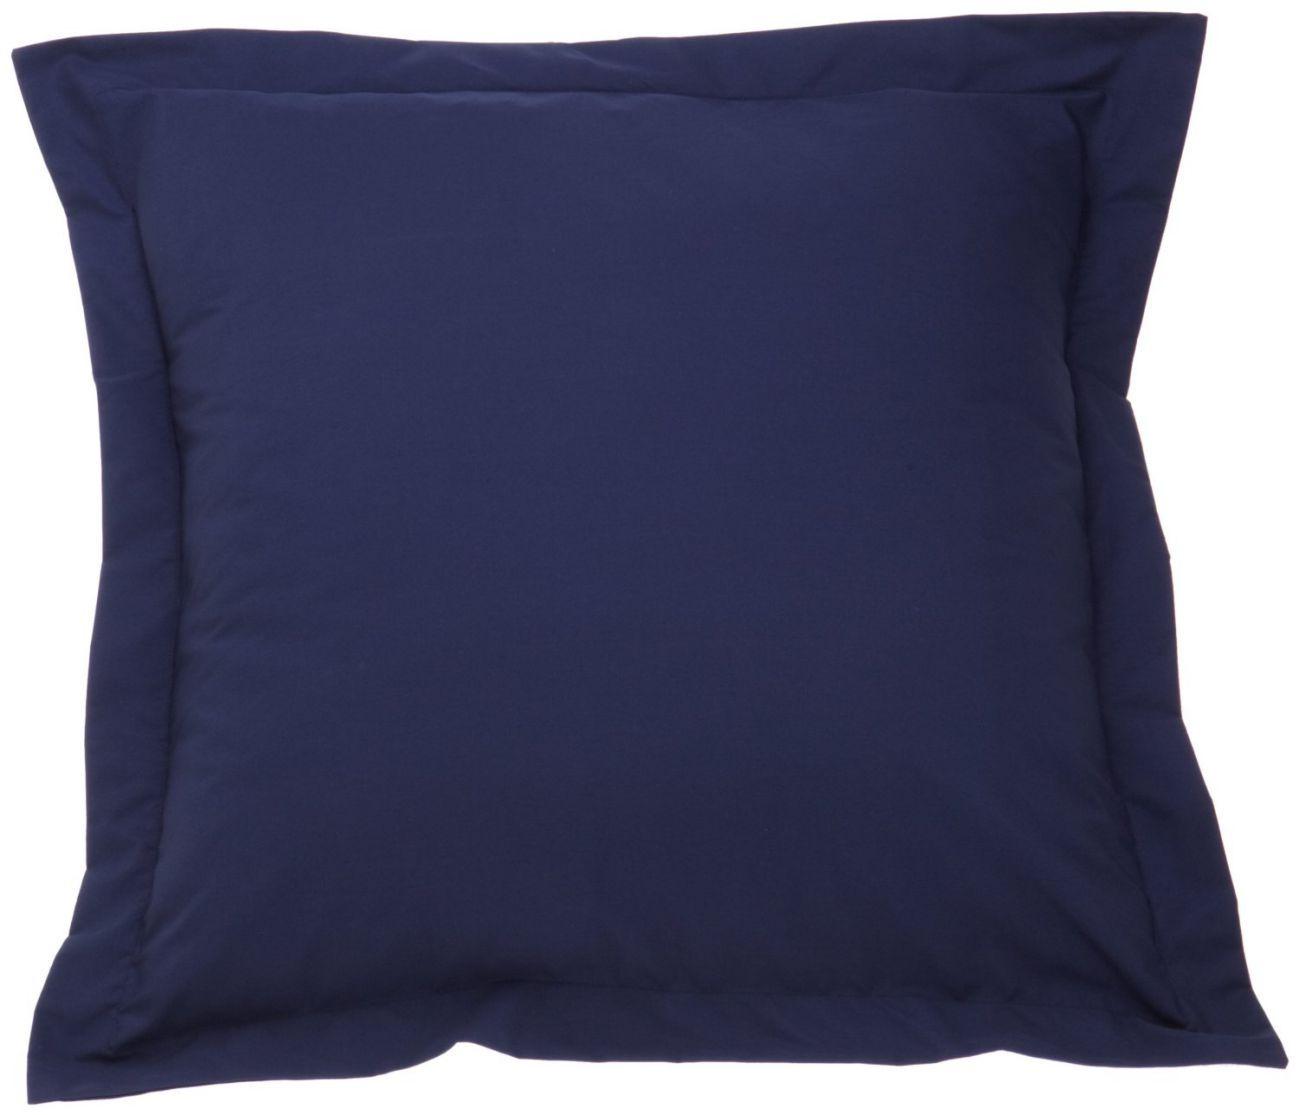 Fresh Ideas Tailored Poplin Pillow Sham Euro, Navy